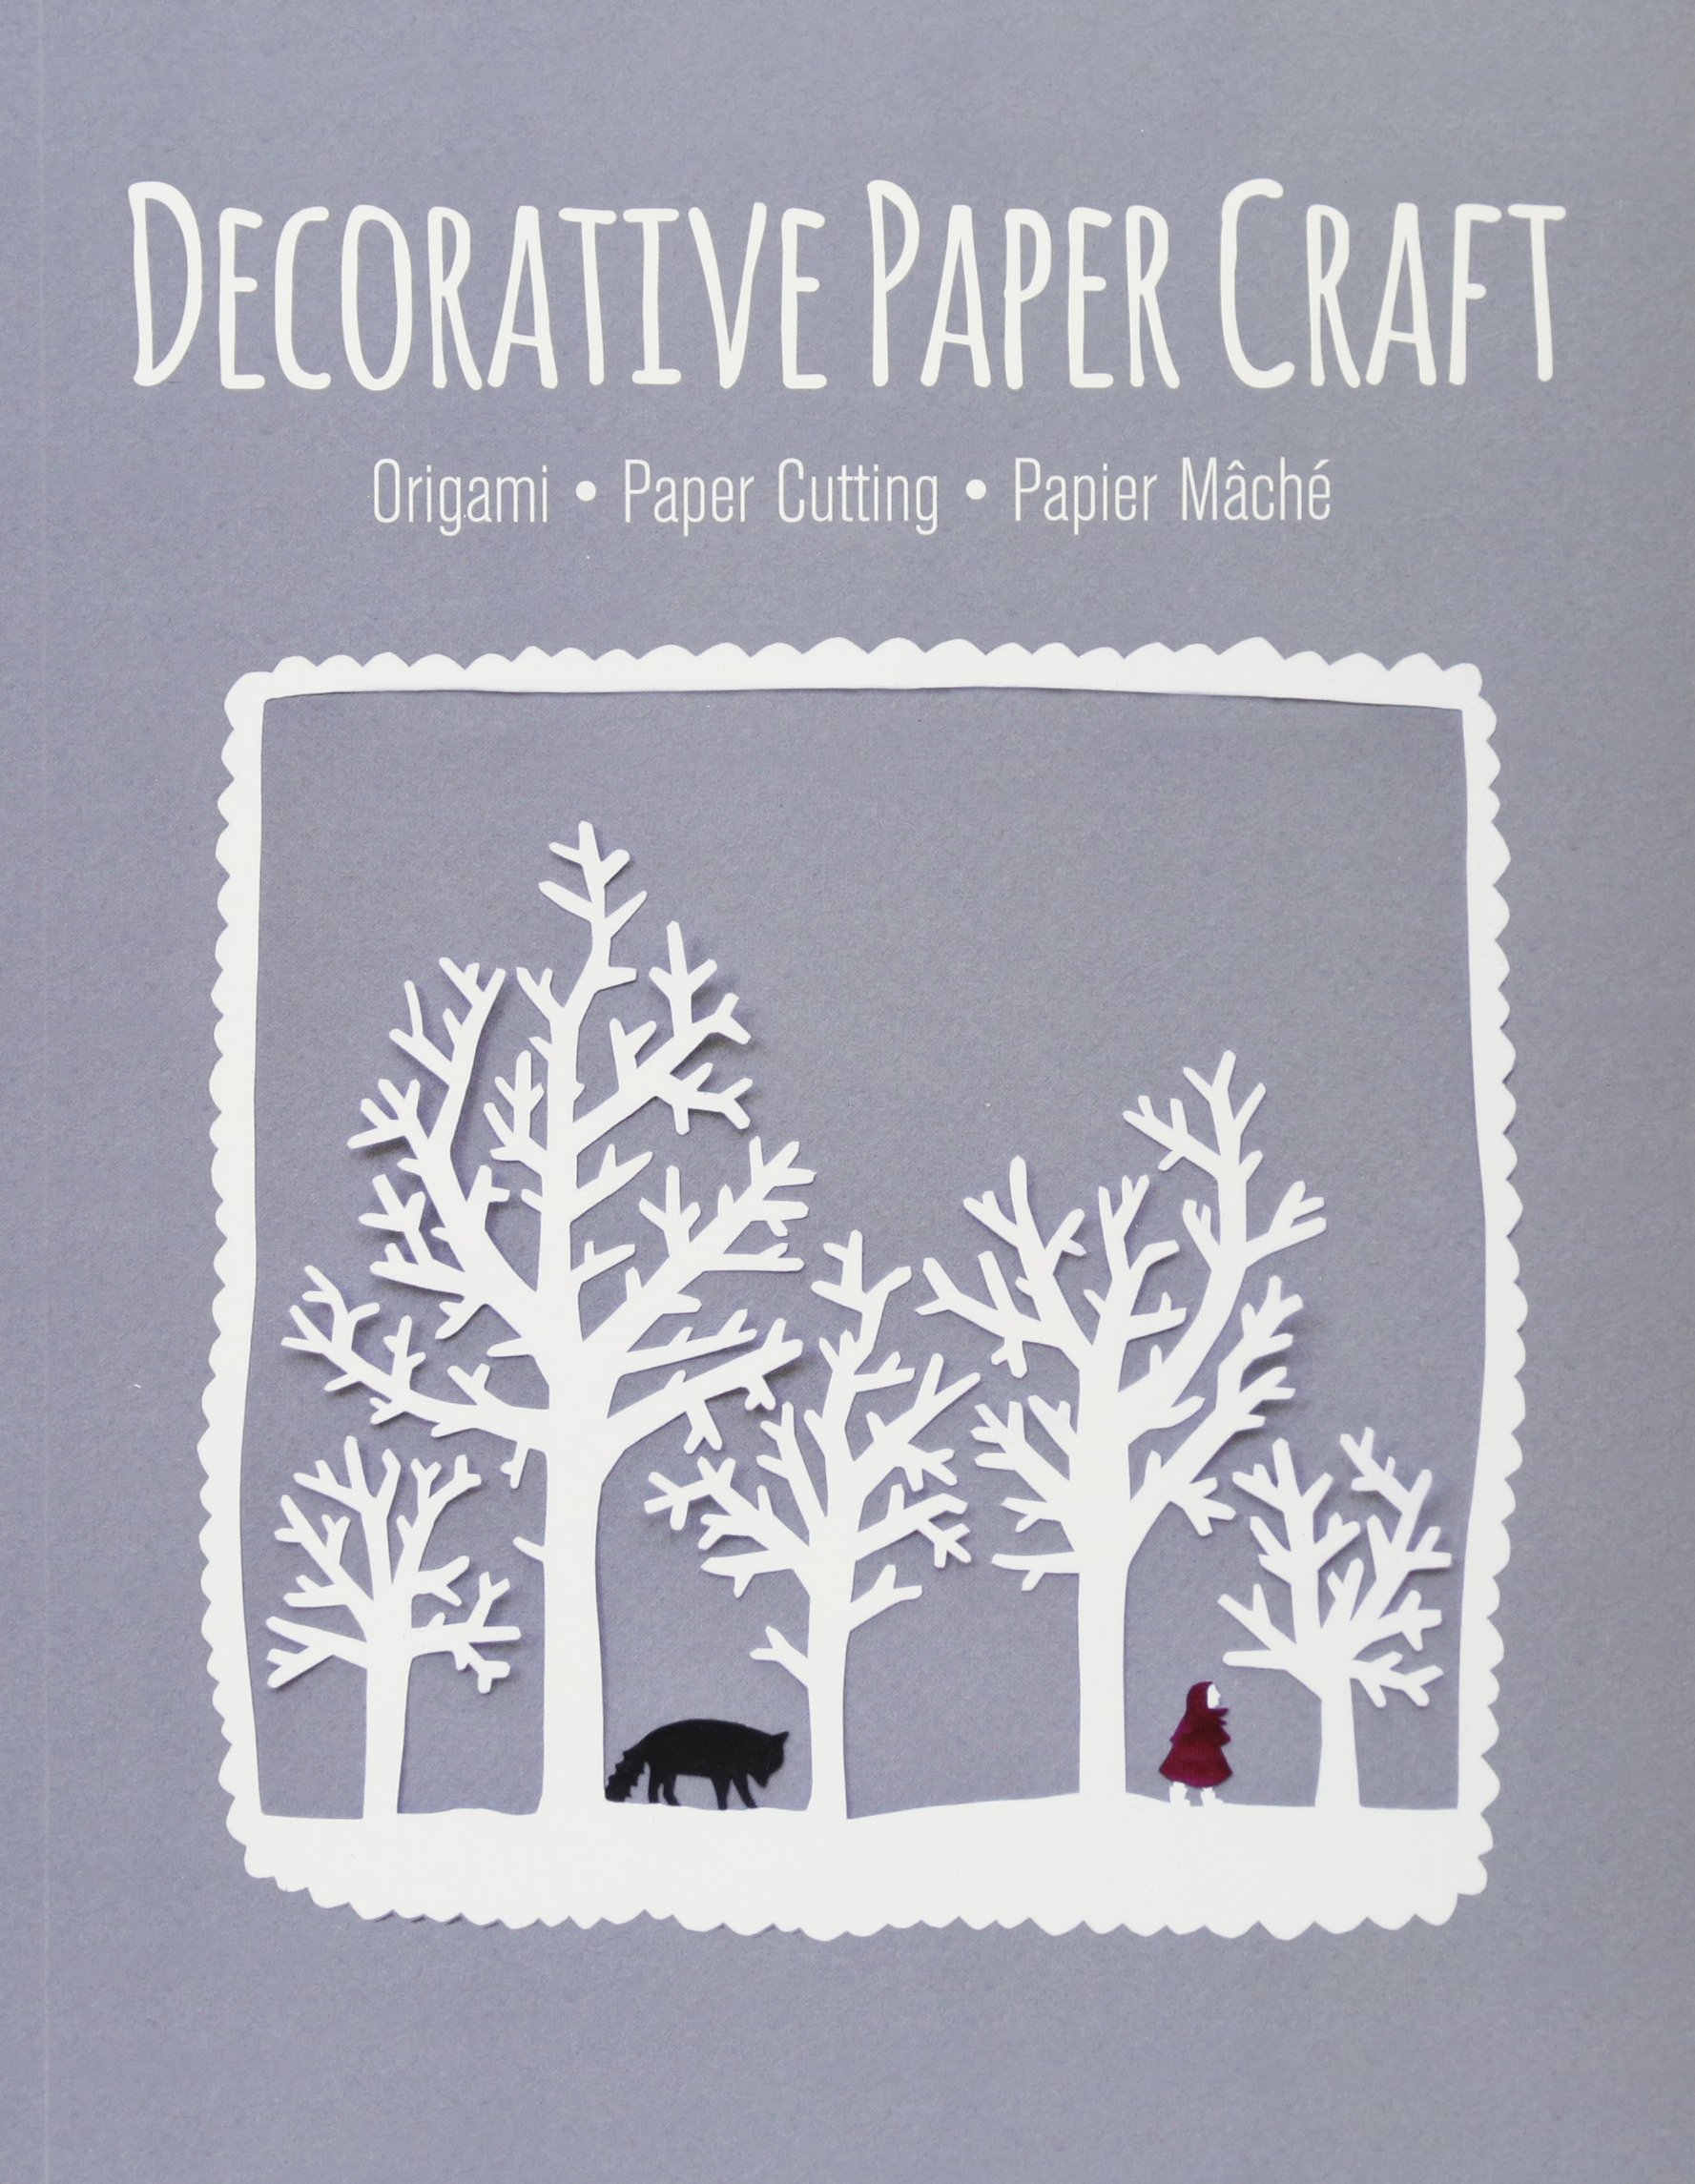 Decorative Paper Craft: Origami * Paper Cutting * Papier Mâché